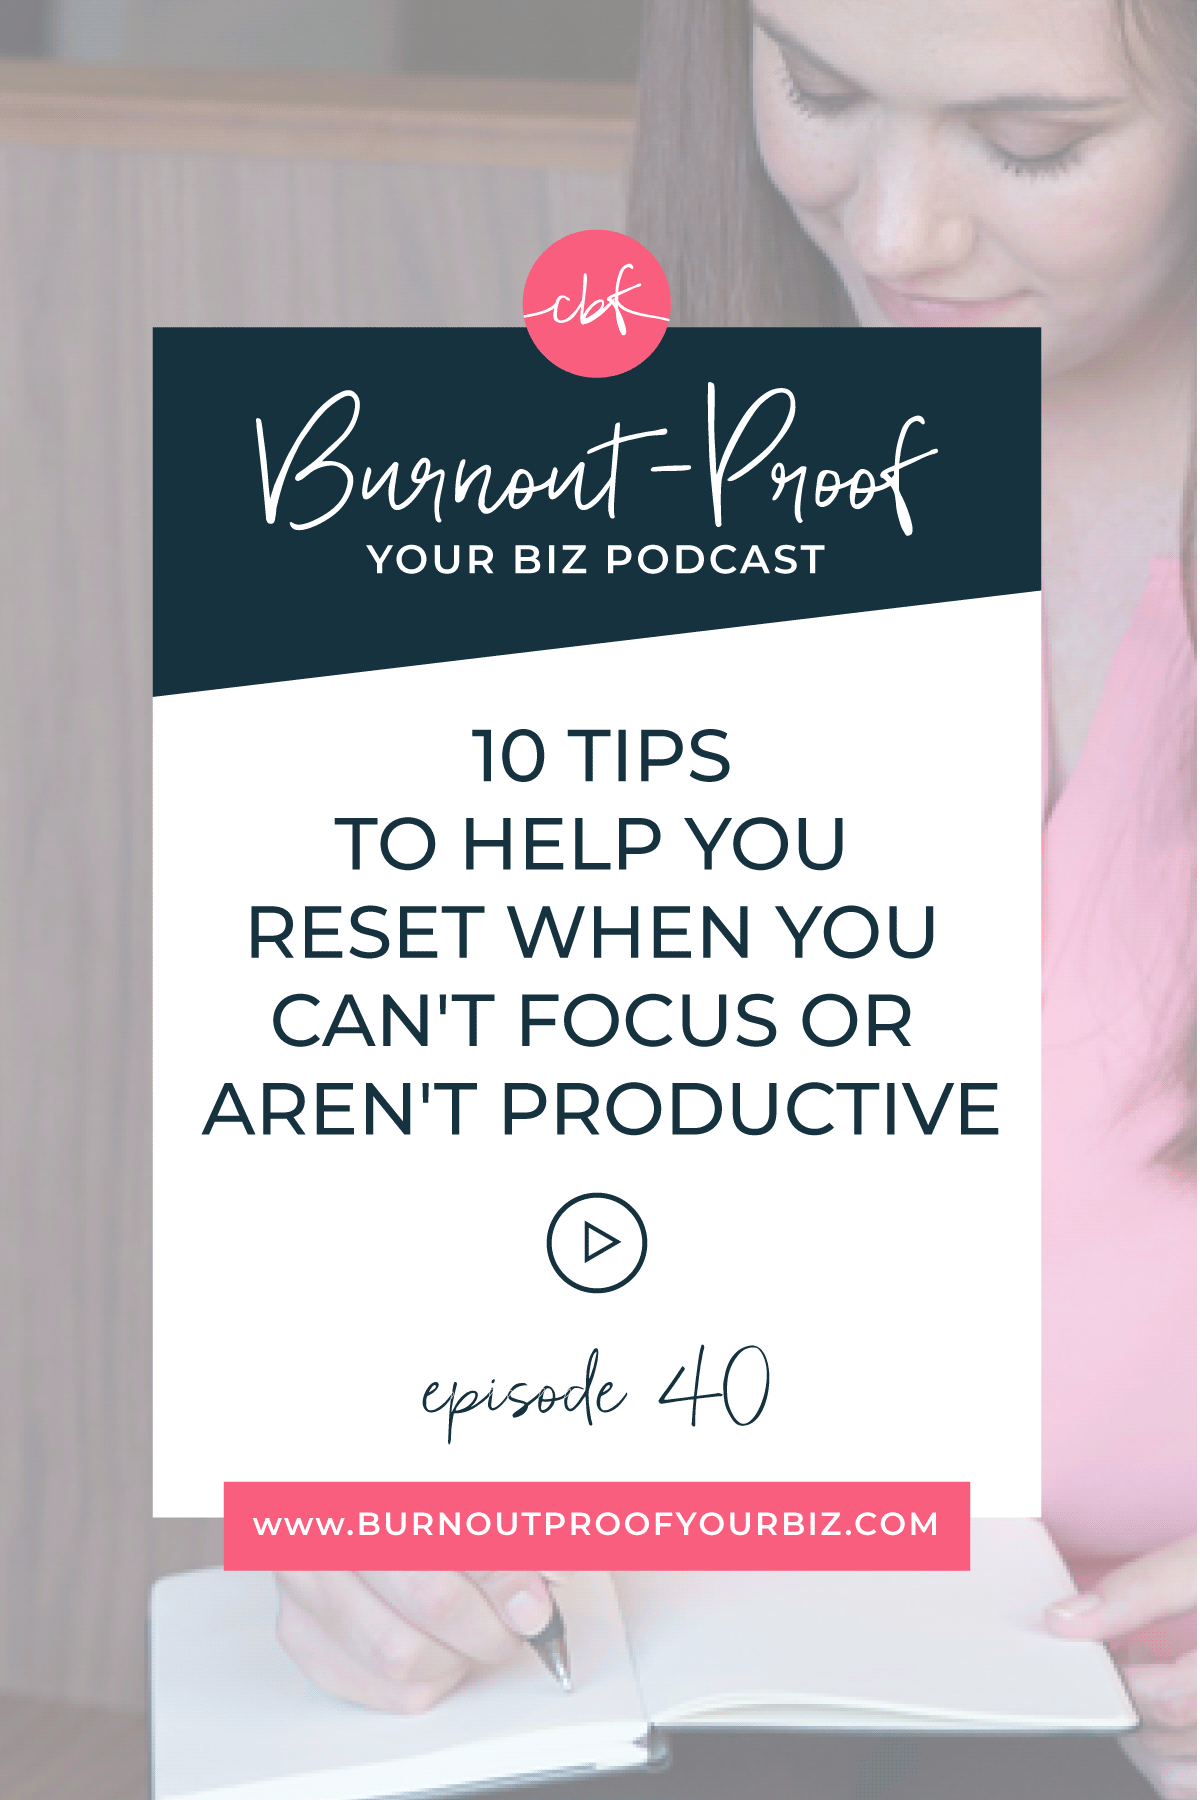 Burnout-Proof Your Biz Podcast with Chelsea B Foster | Episode 040 - 10 Tips to Help You Reset When You Can't Focus or Aren't Productive | Learn how to run your biz and live your dream life on your own terms without the fear of burnout.  Workflow & Productivity Specialist | How to focus | How to work smarter | How to work faster, more efficient | How to be more productive | What to do when you can't focus | What to do when you aren't productive